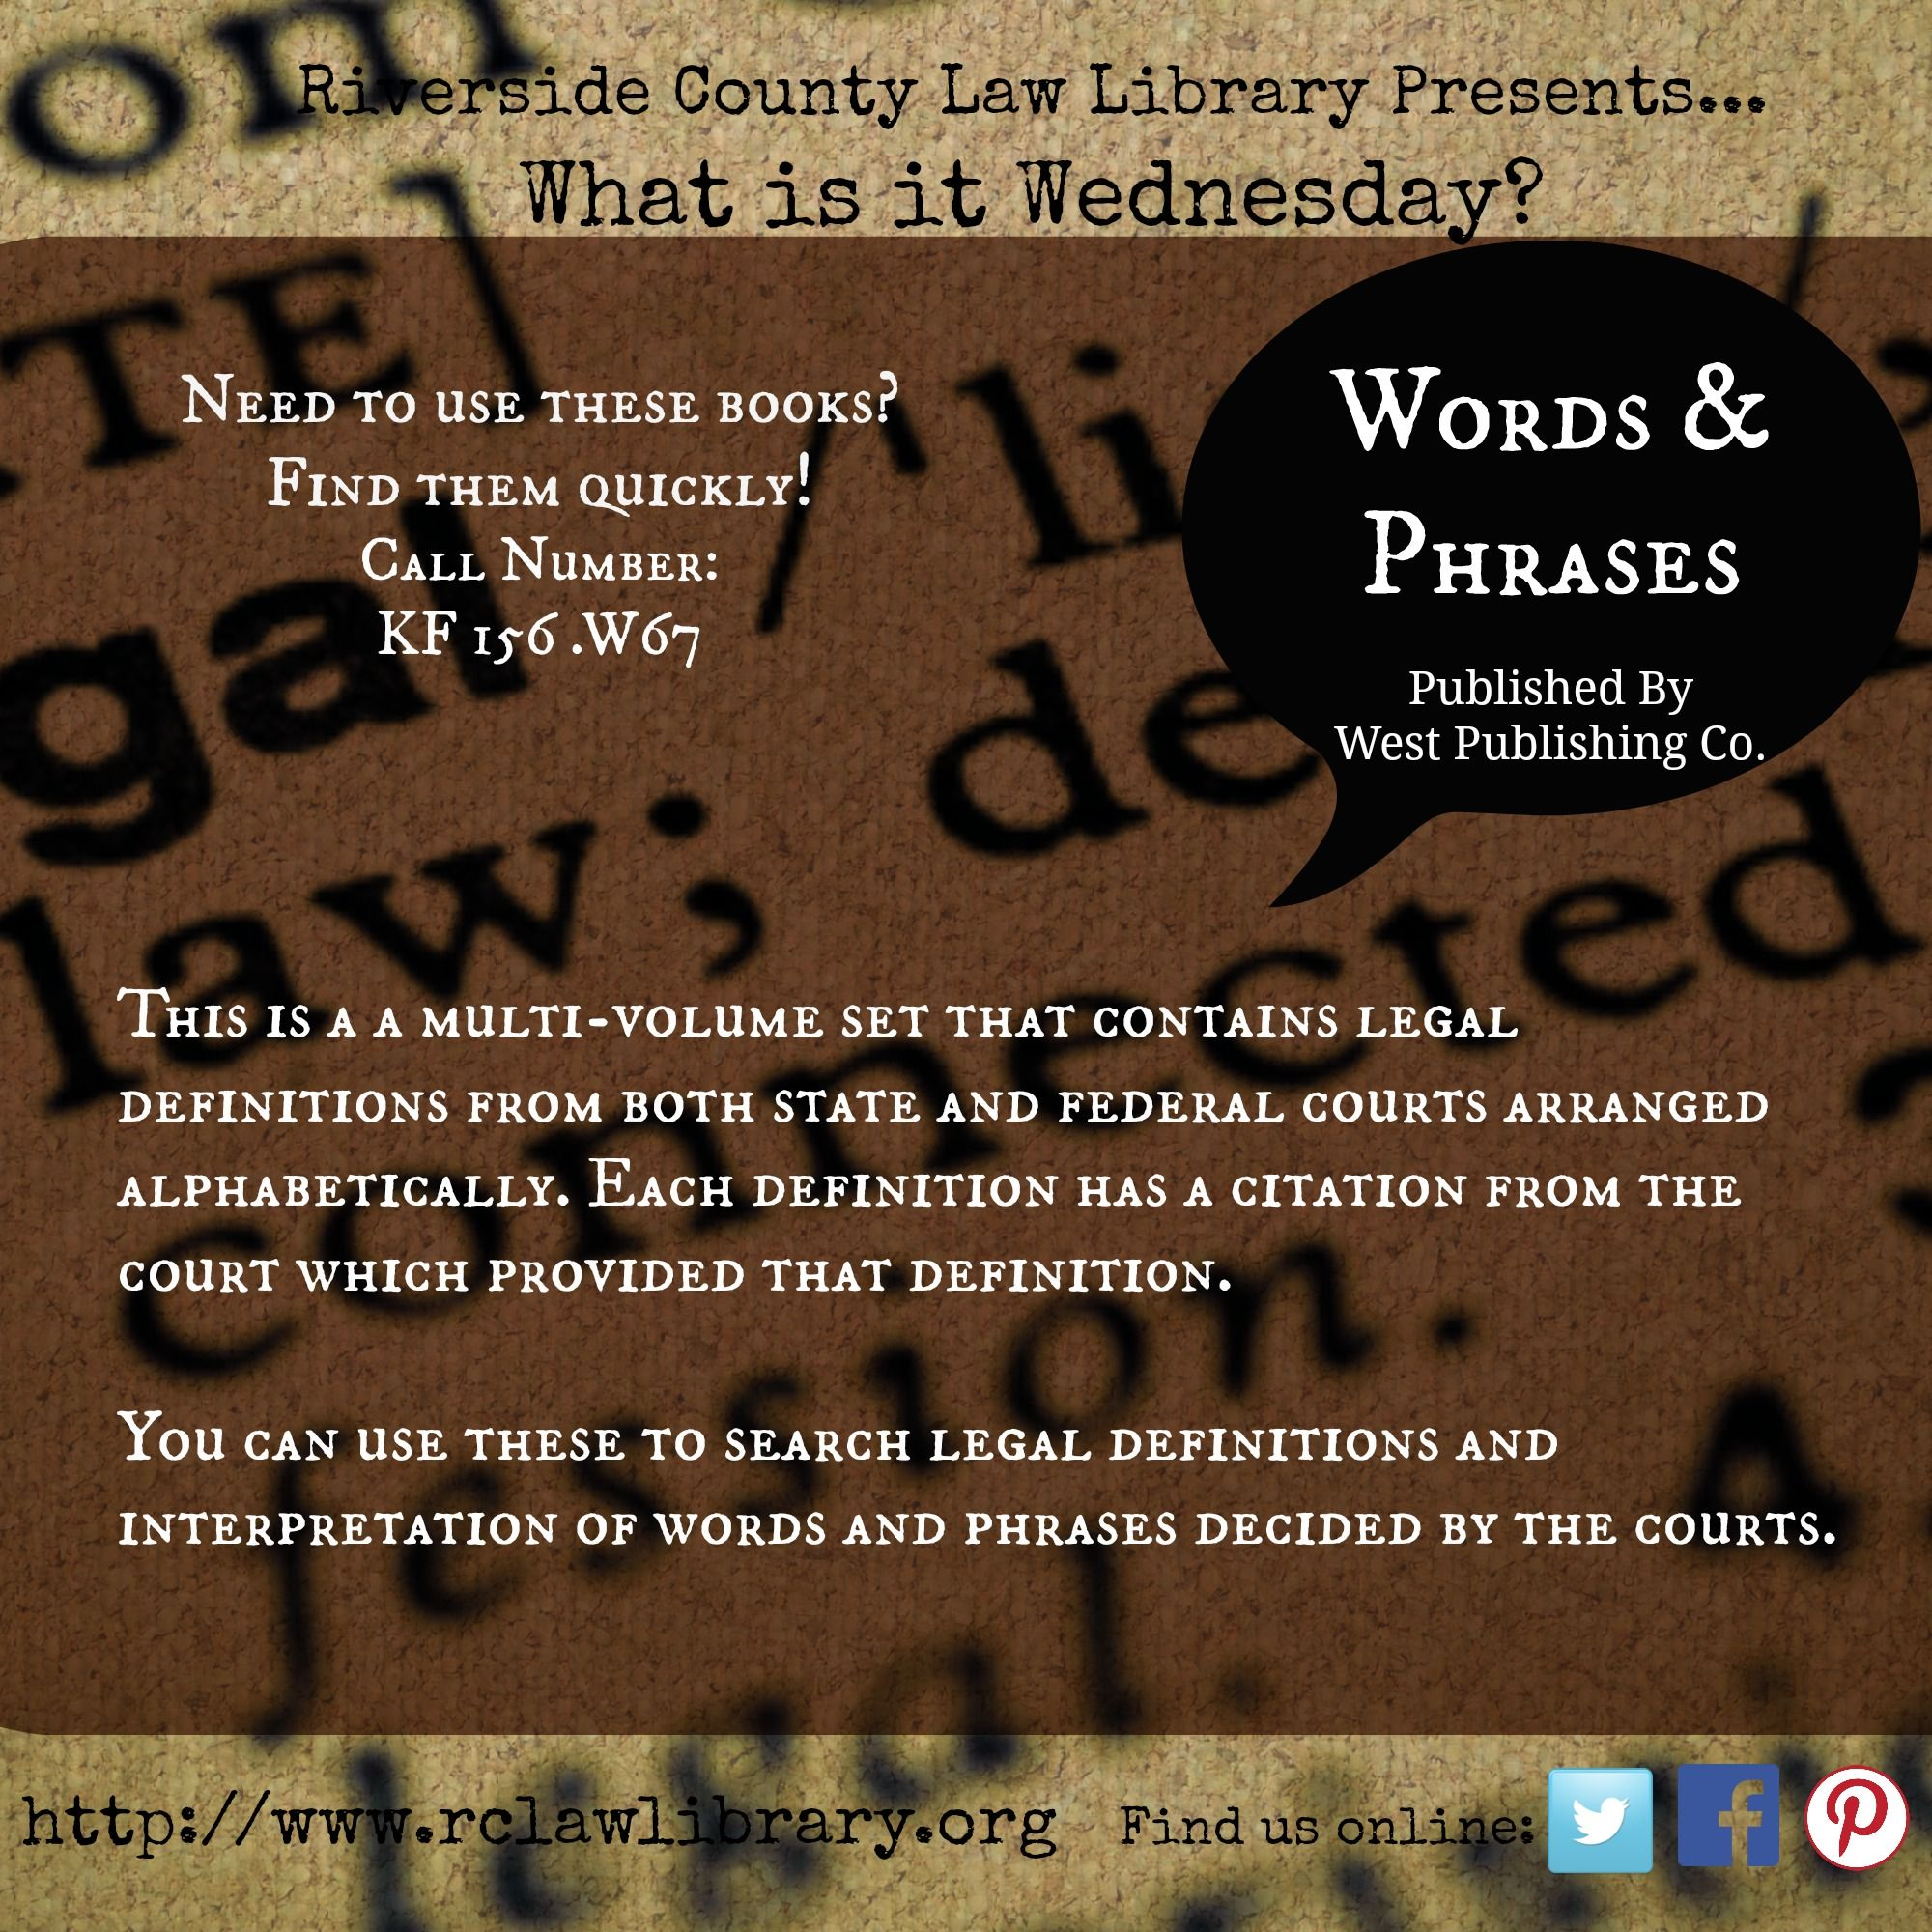 Need a legal definition? Look up the words and phrases here in these What  is it? Wednesday books.